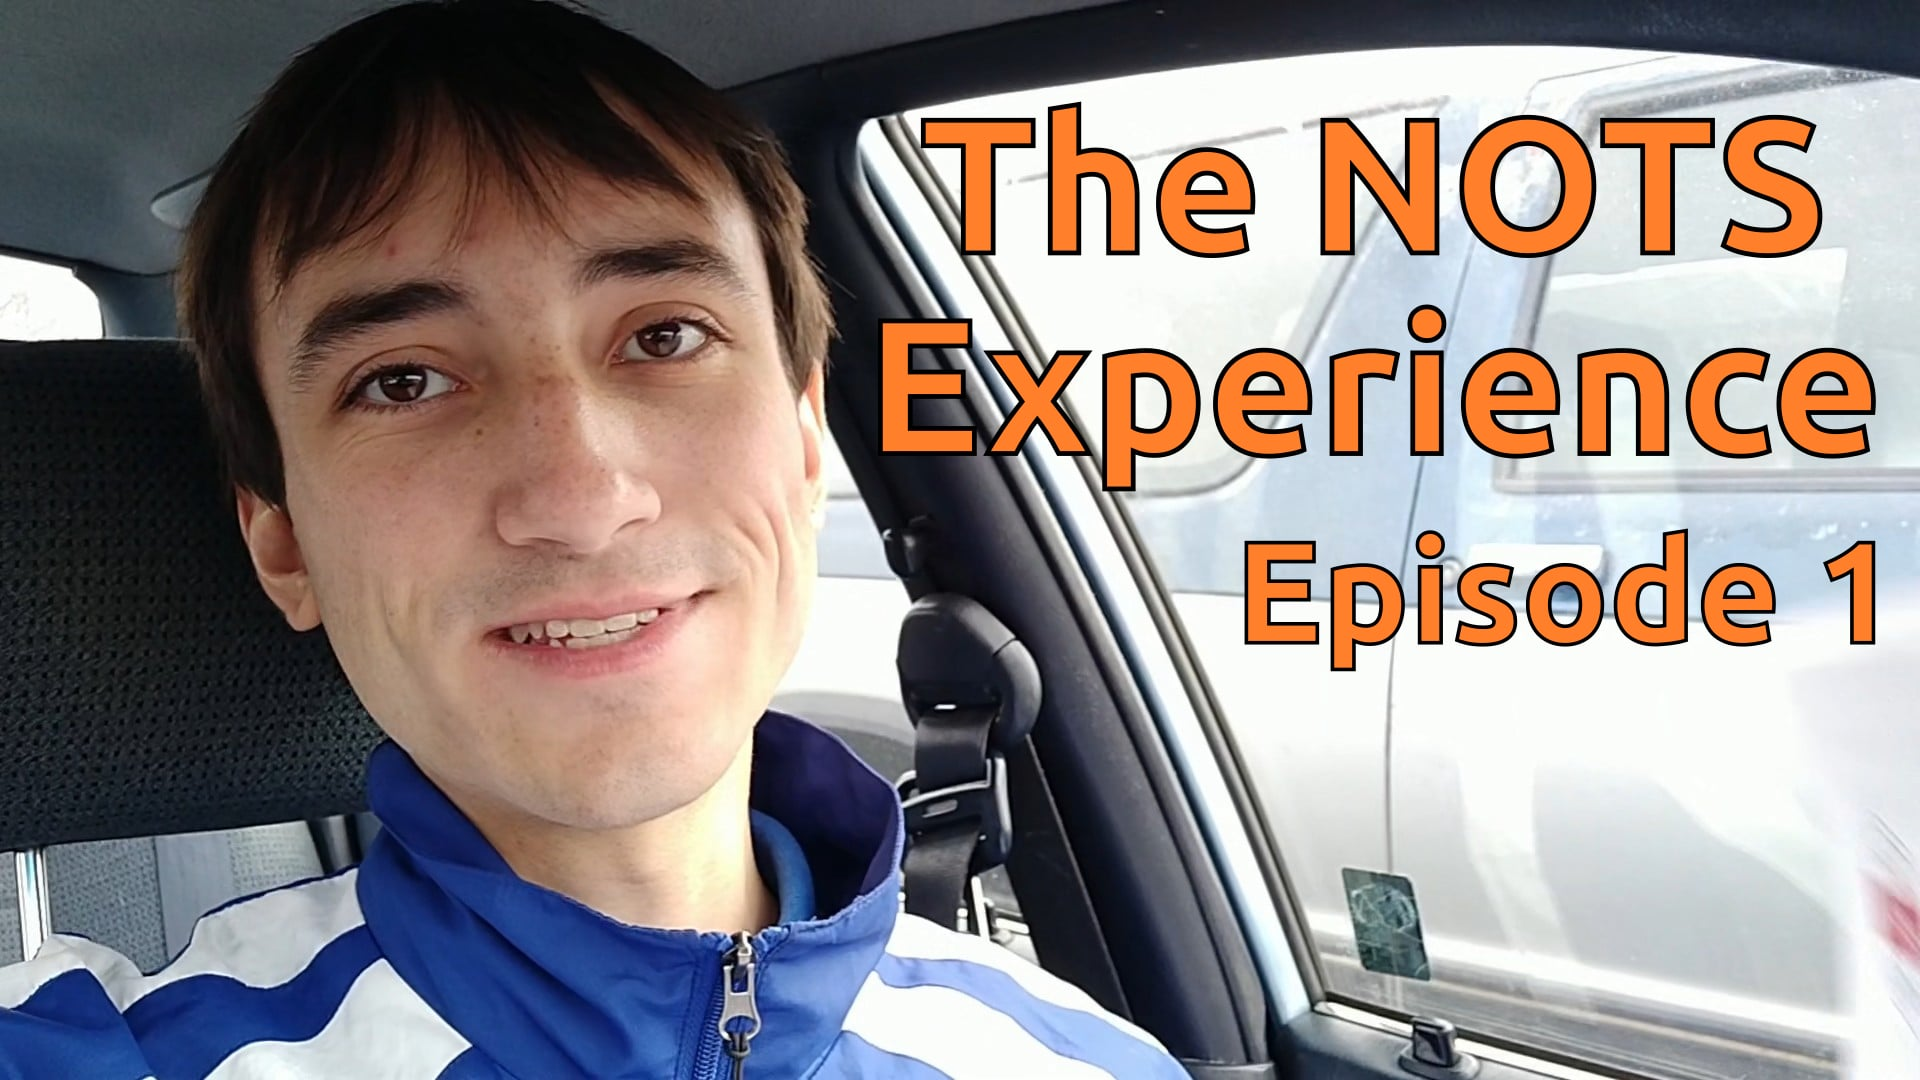 Episode 1 - The NOTS Experience